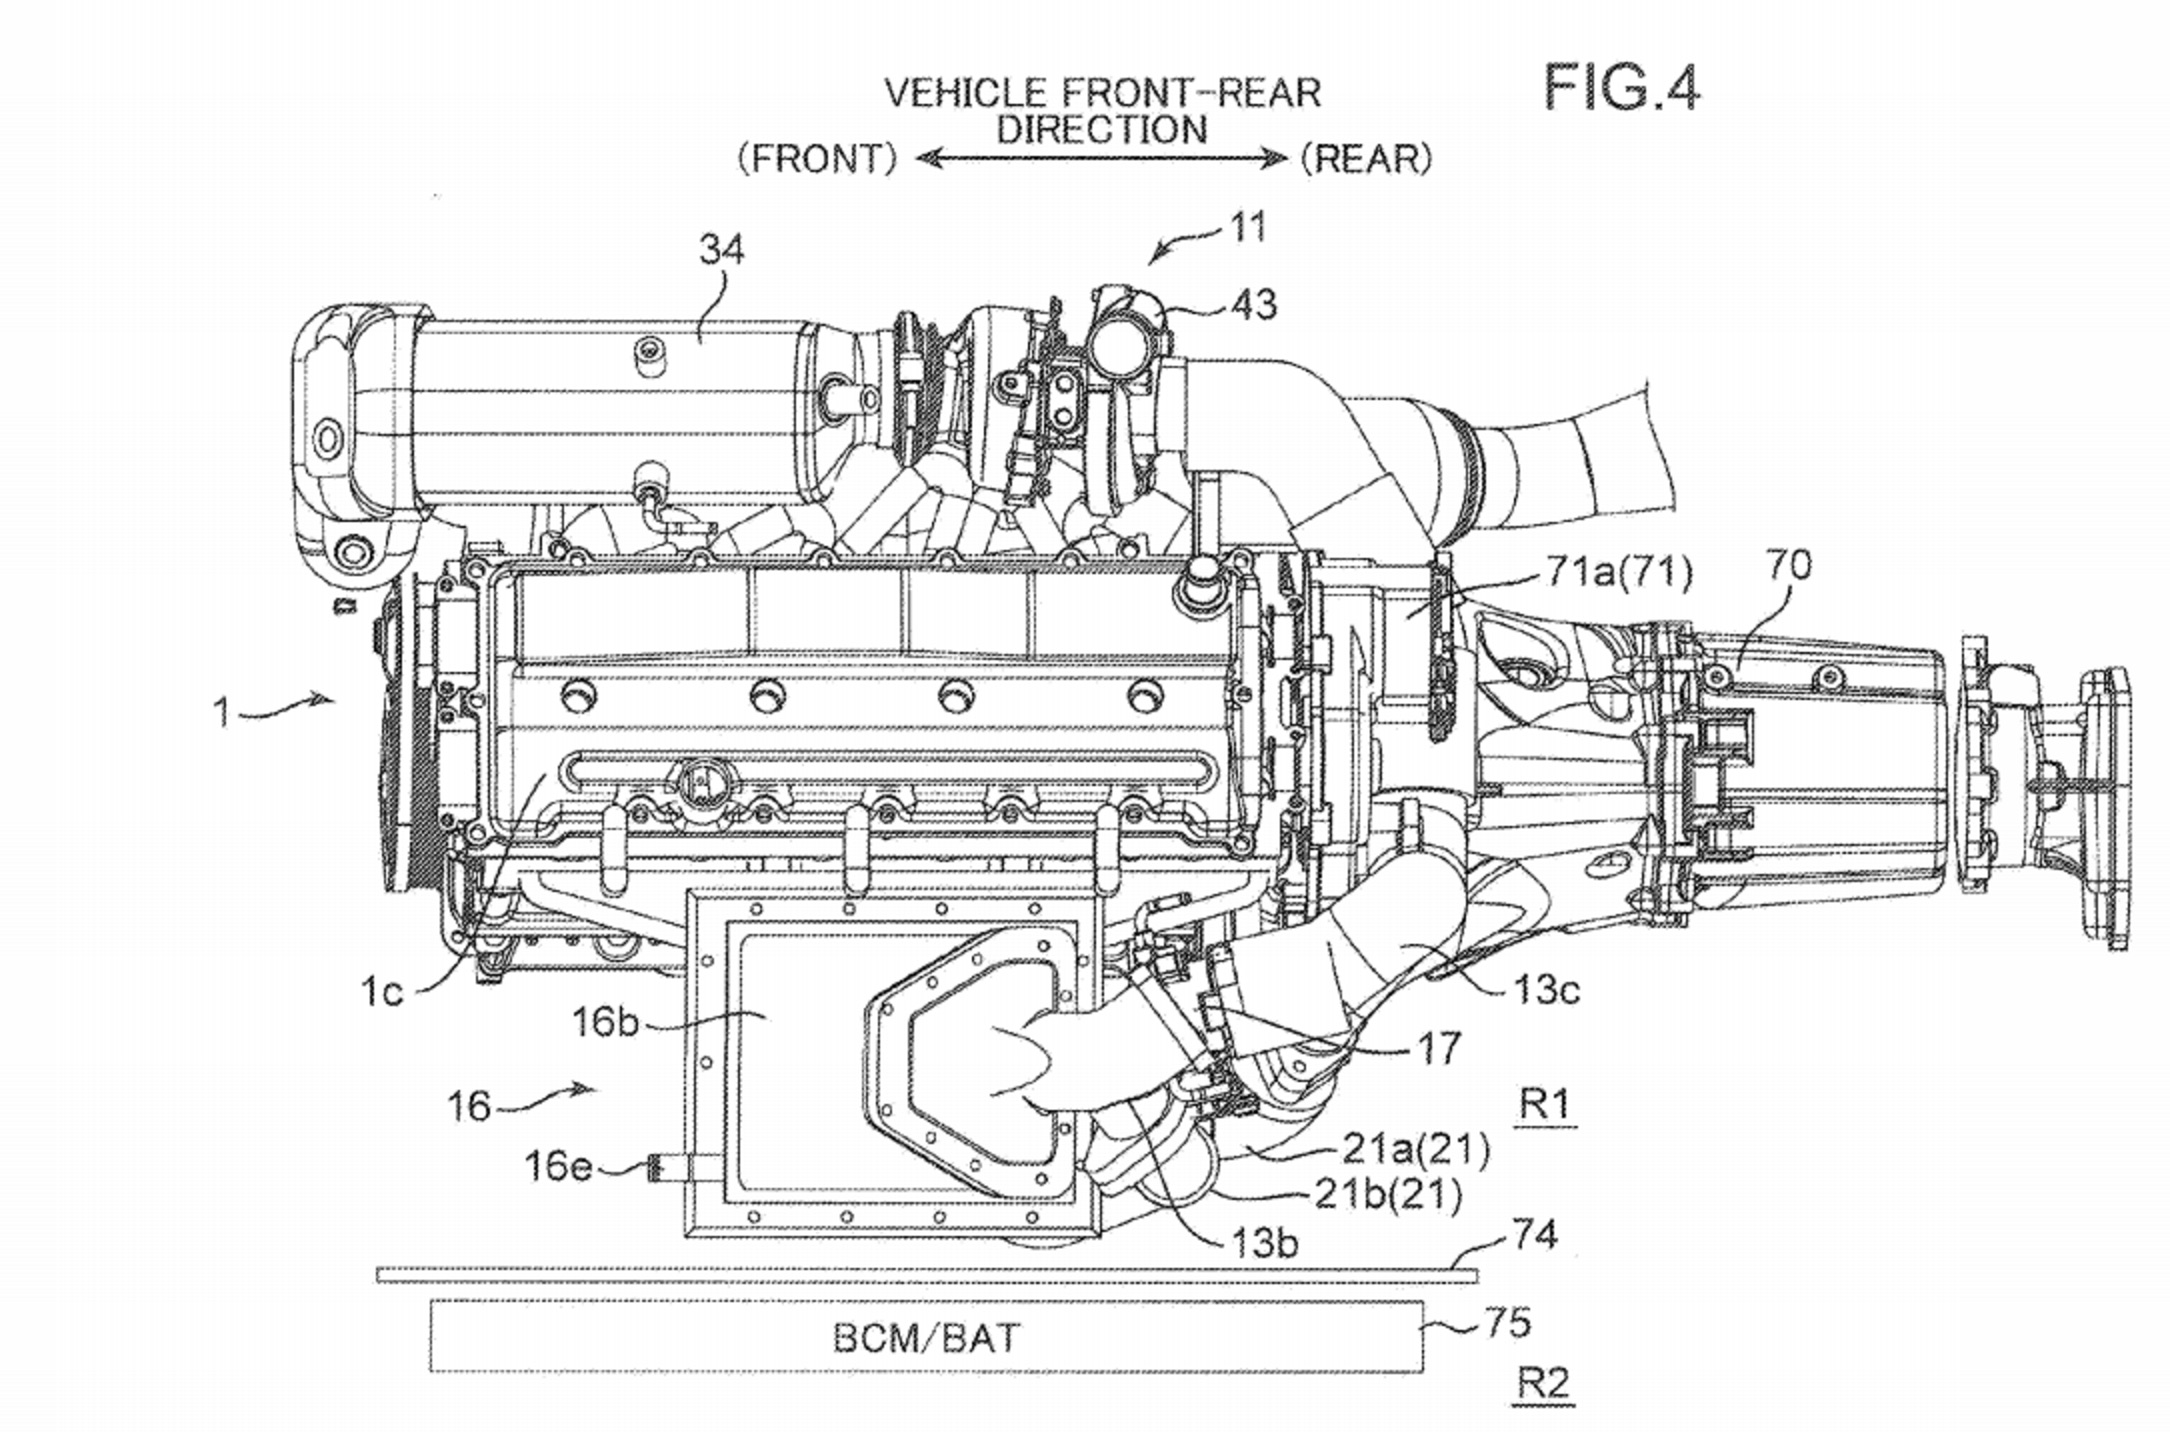 Mazda Patents Engine With Two Turbos And An Electric Supercharger Internal Combustion Diagram Of A Show How Works